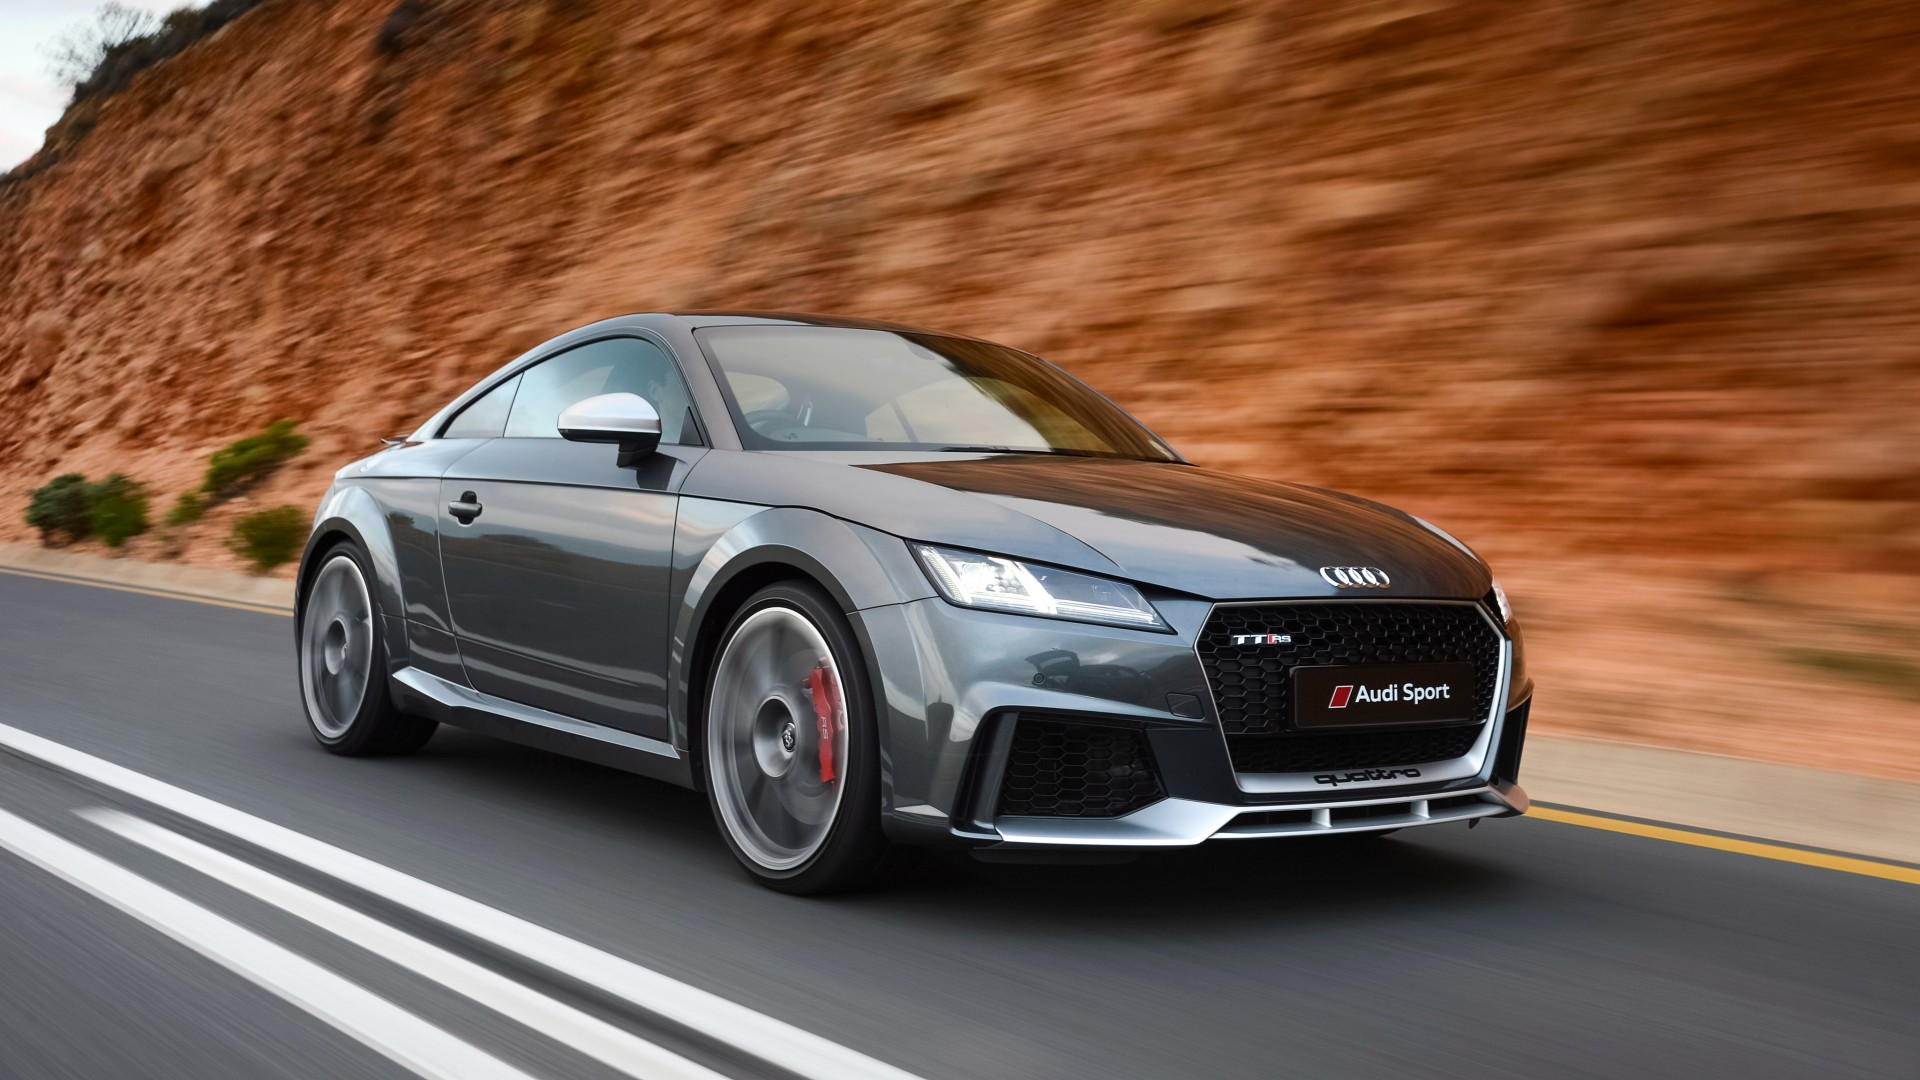 2018 Audi TT RS 4K 2 Wallpaper HD Car Wallpapers ID 9071